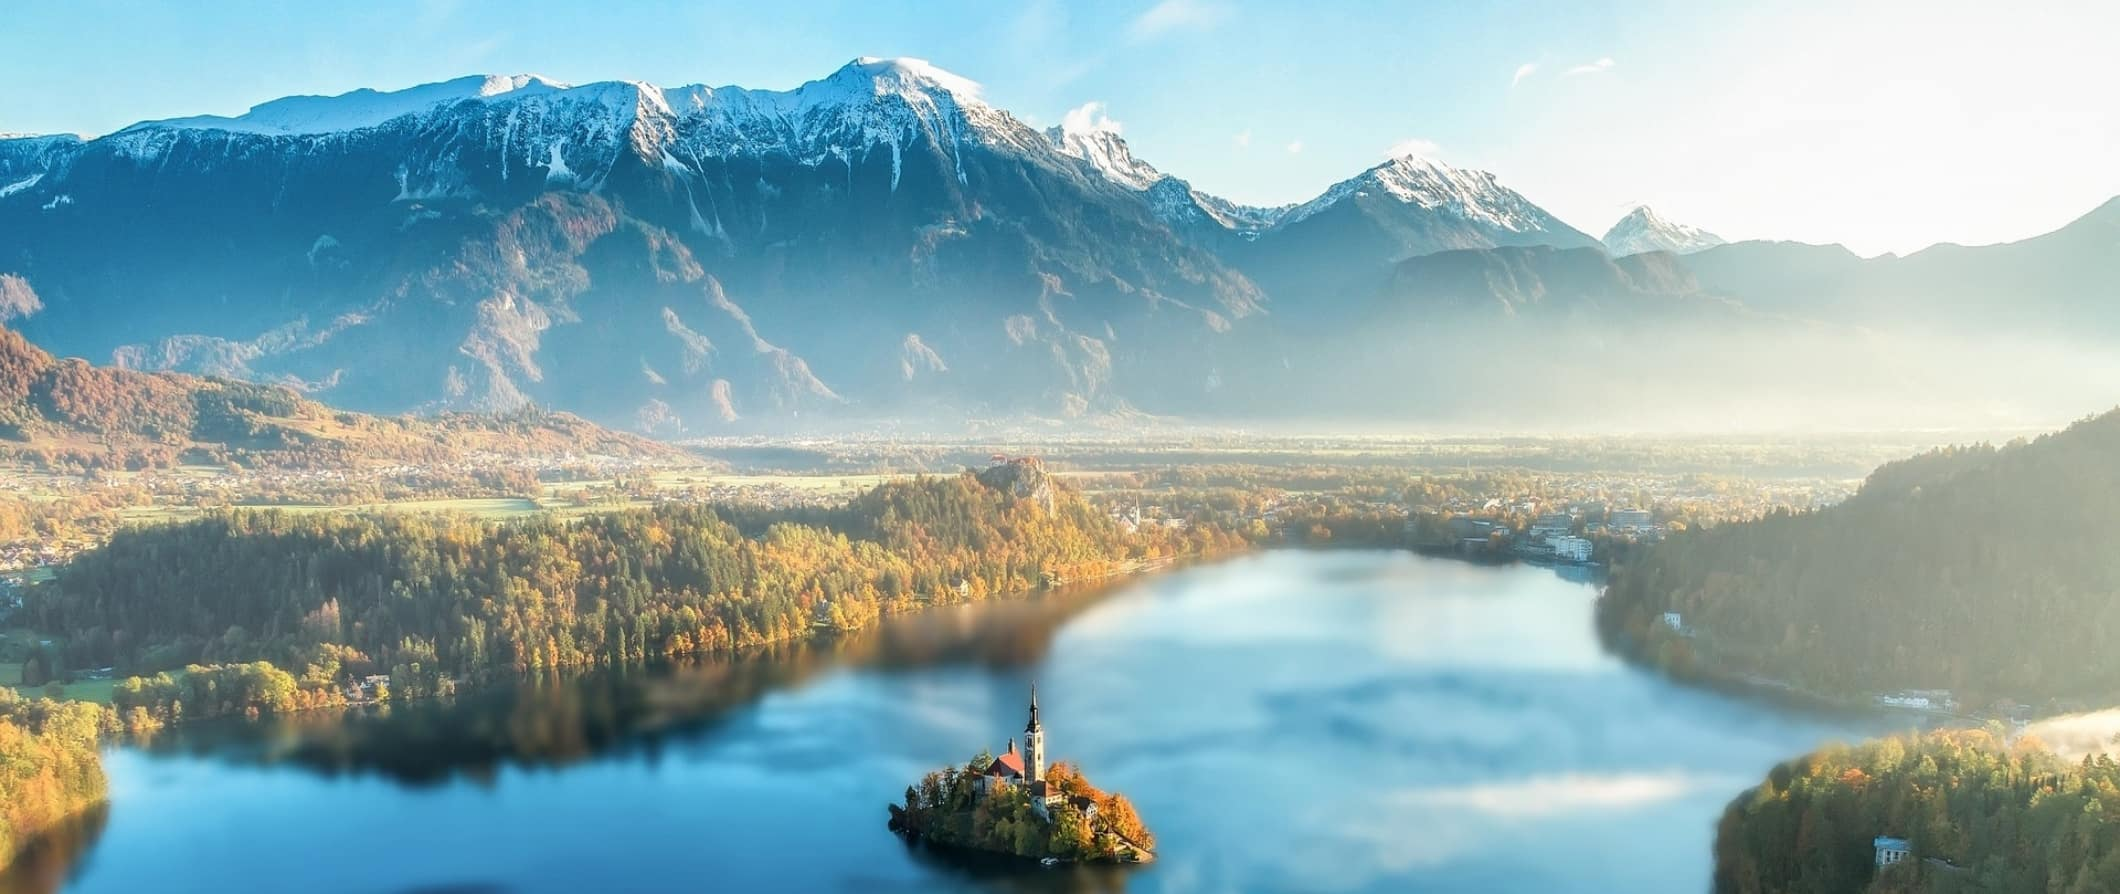 The mountains and lake surrounding Bled Island in Slovenia